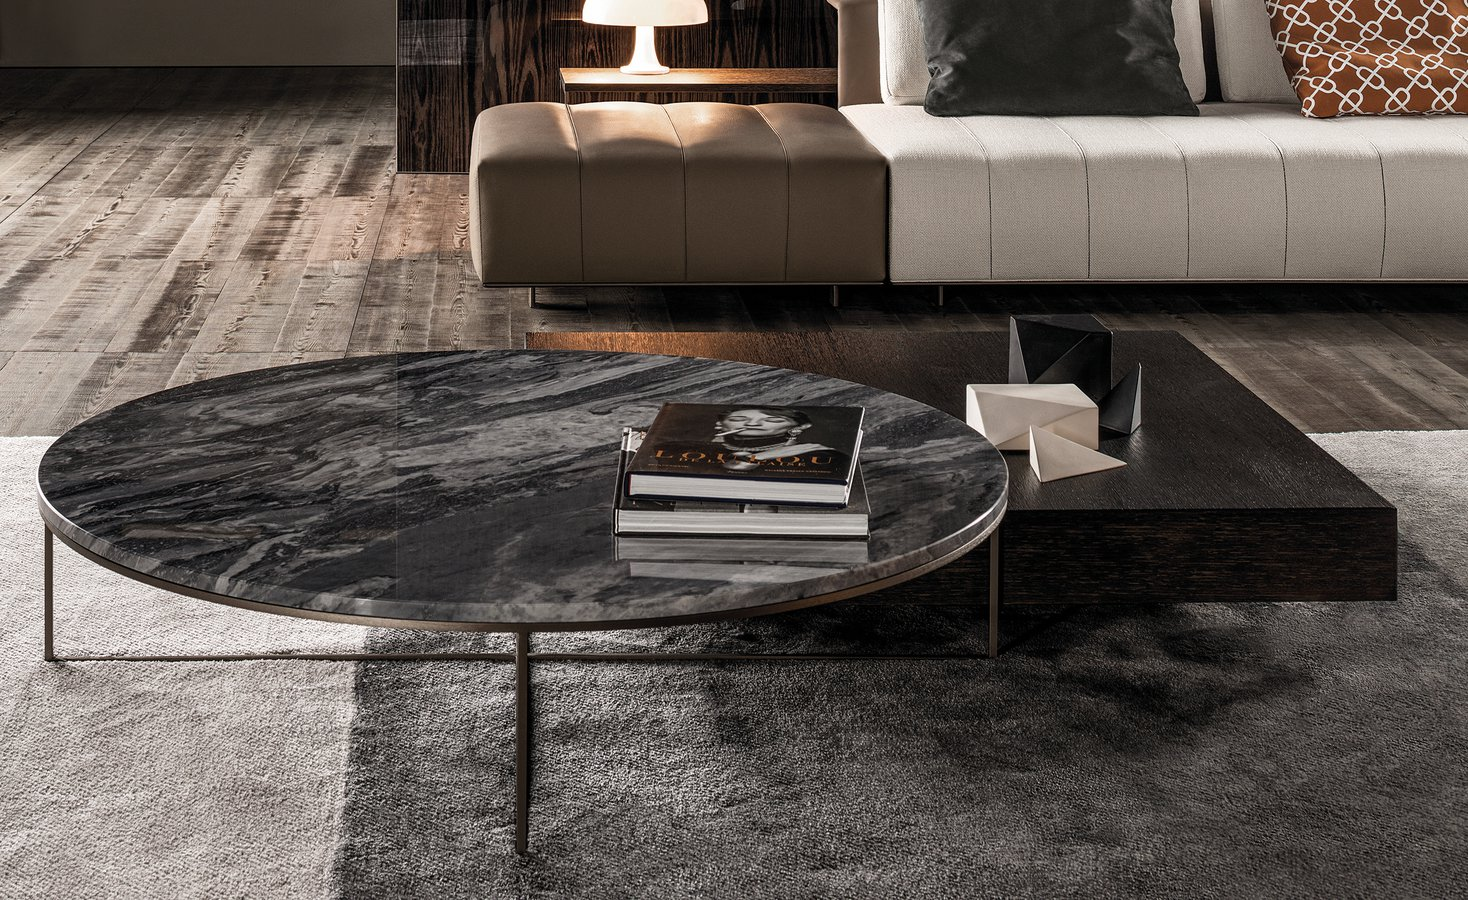 Calder bronze coffee table round by minotti ecc a series of new finishes contributes a fresh contemporary feel to the calder family that comprises many coffee tables and console tables available in geotapseo Images